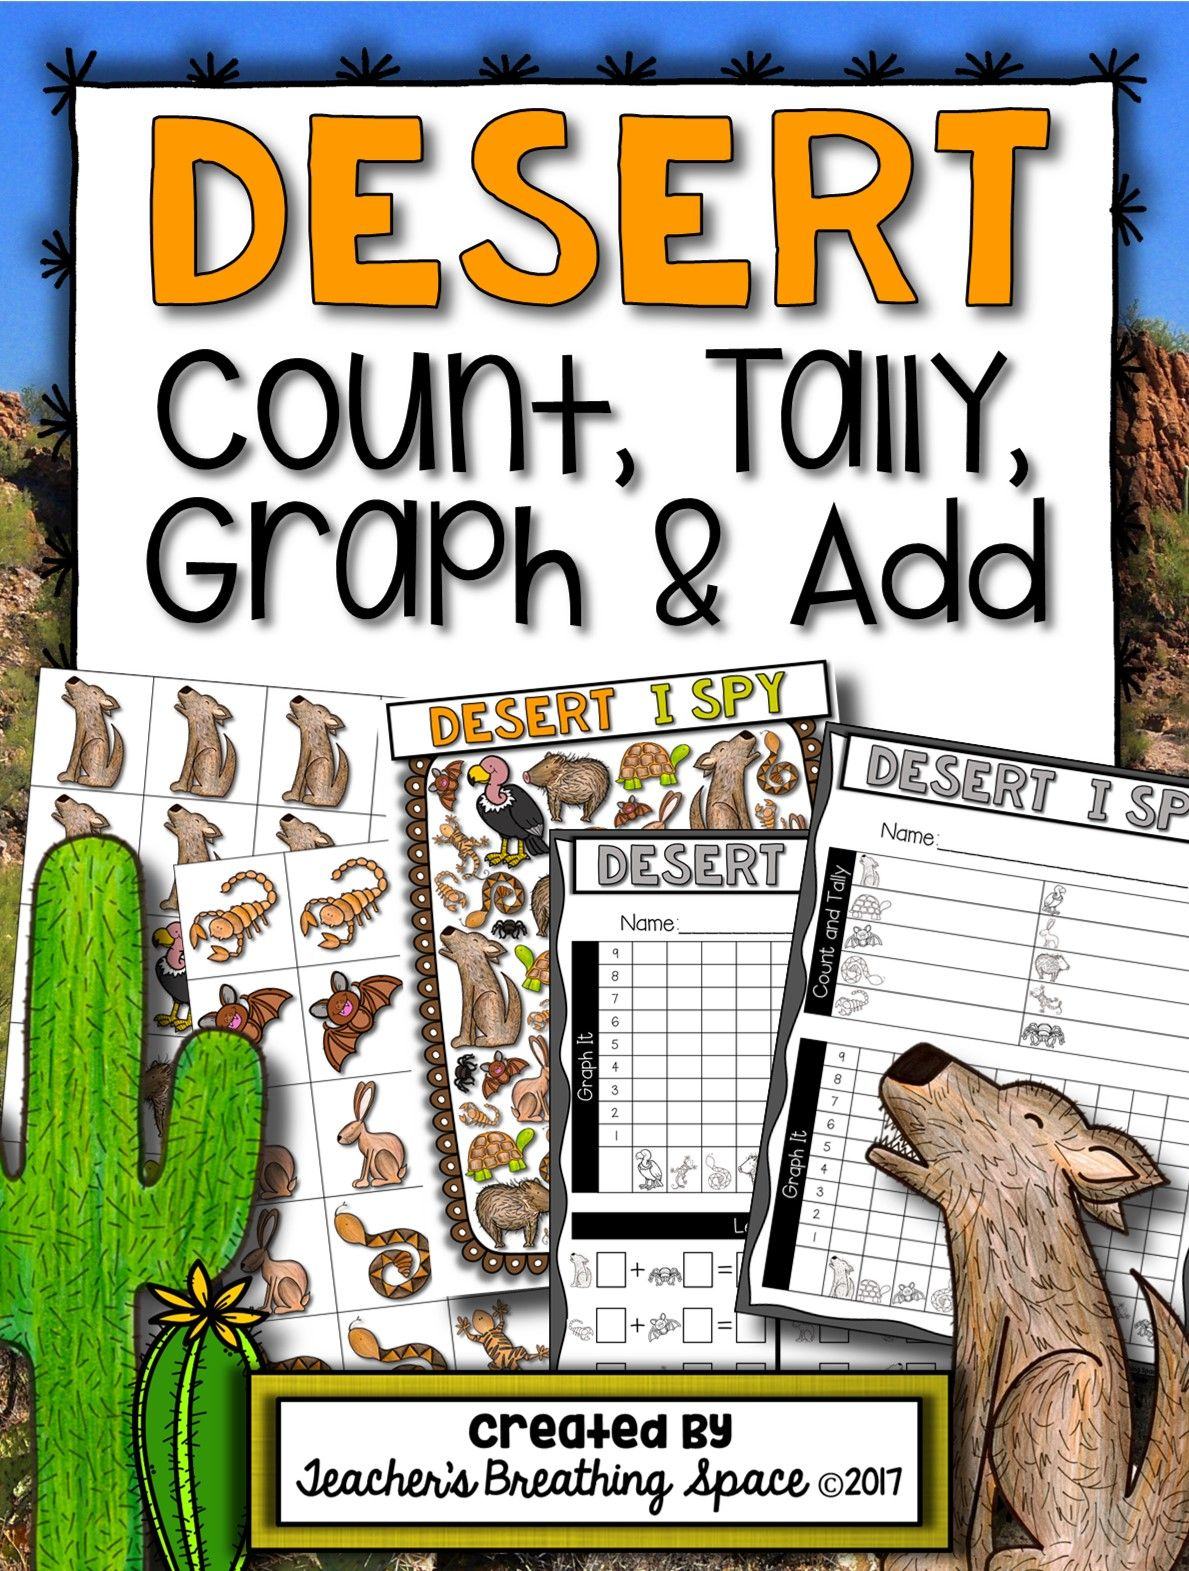 Desert Count Tally Graph And Add Desert Graphing